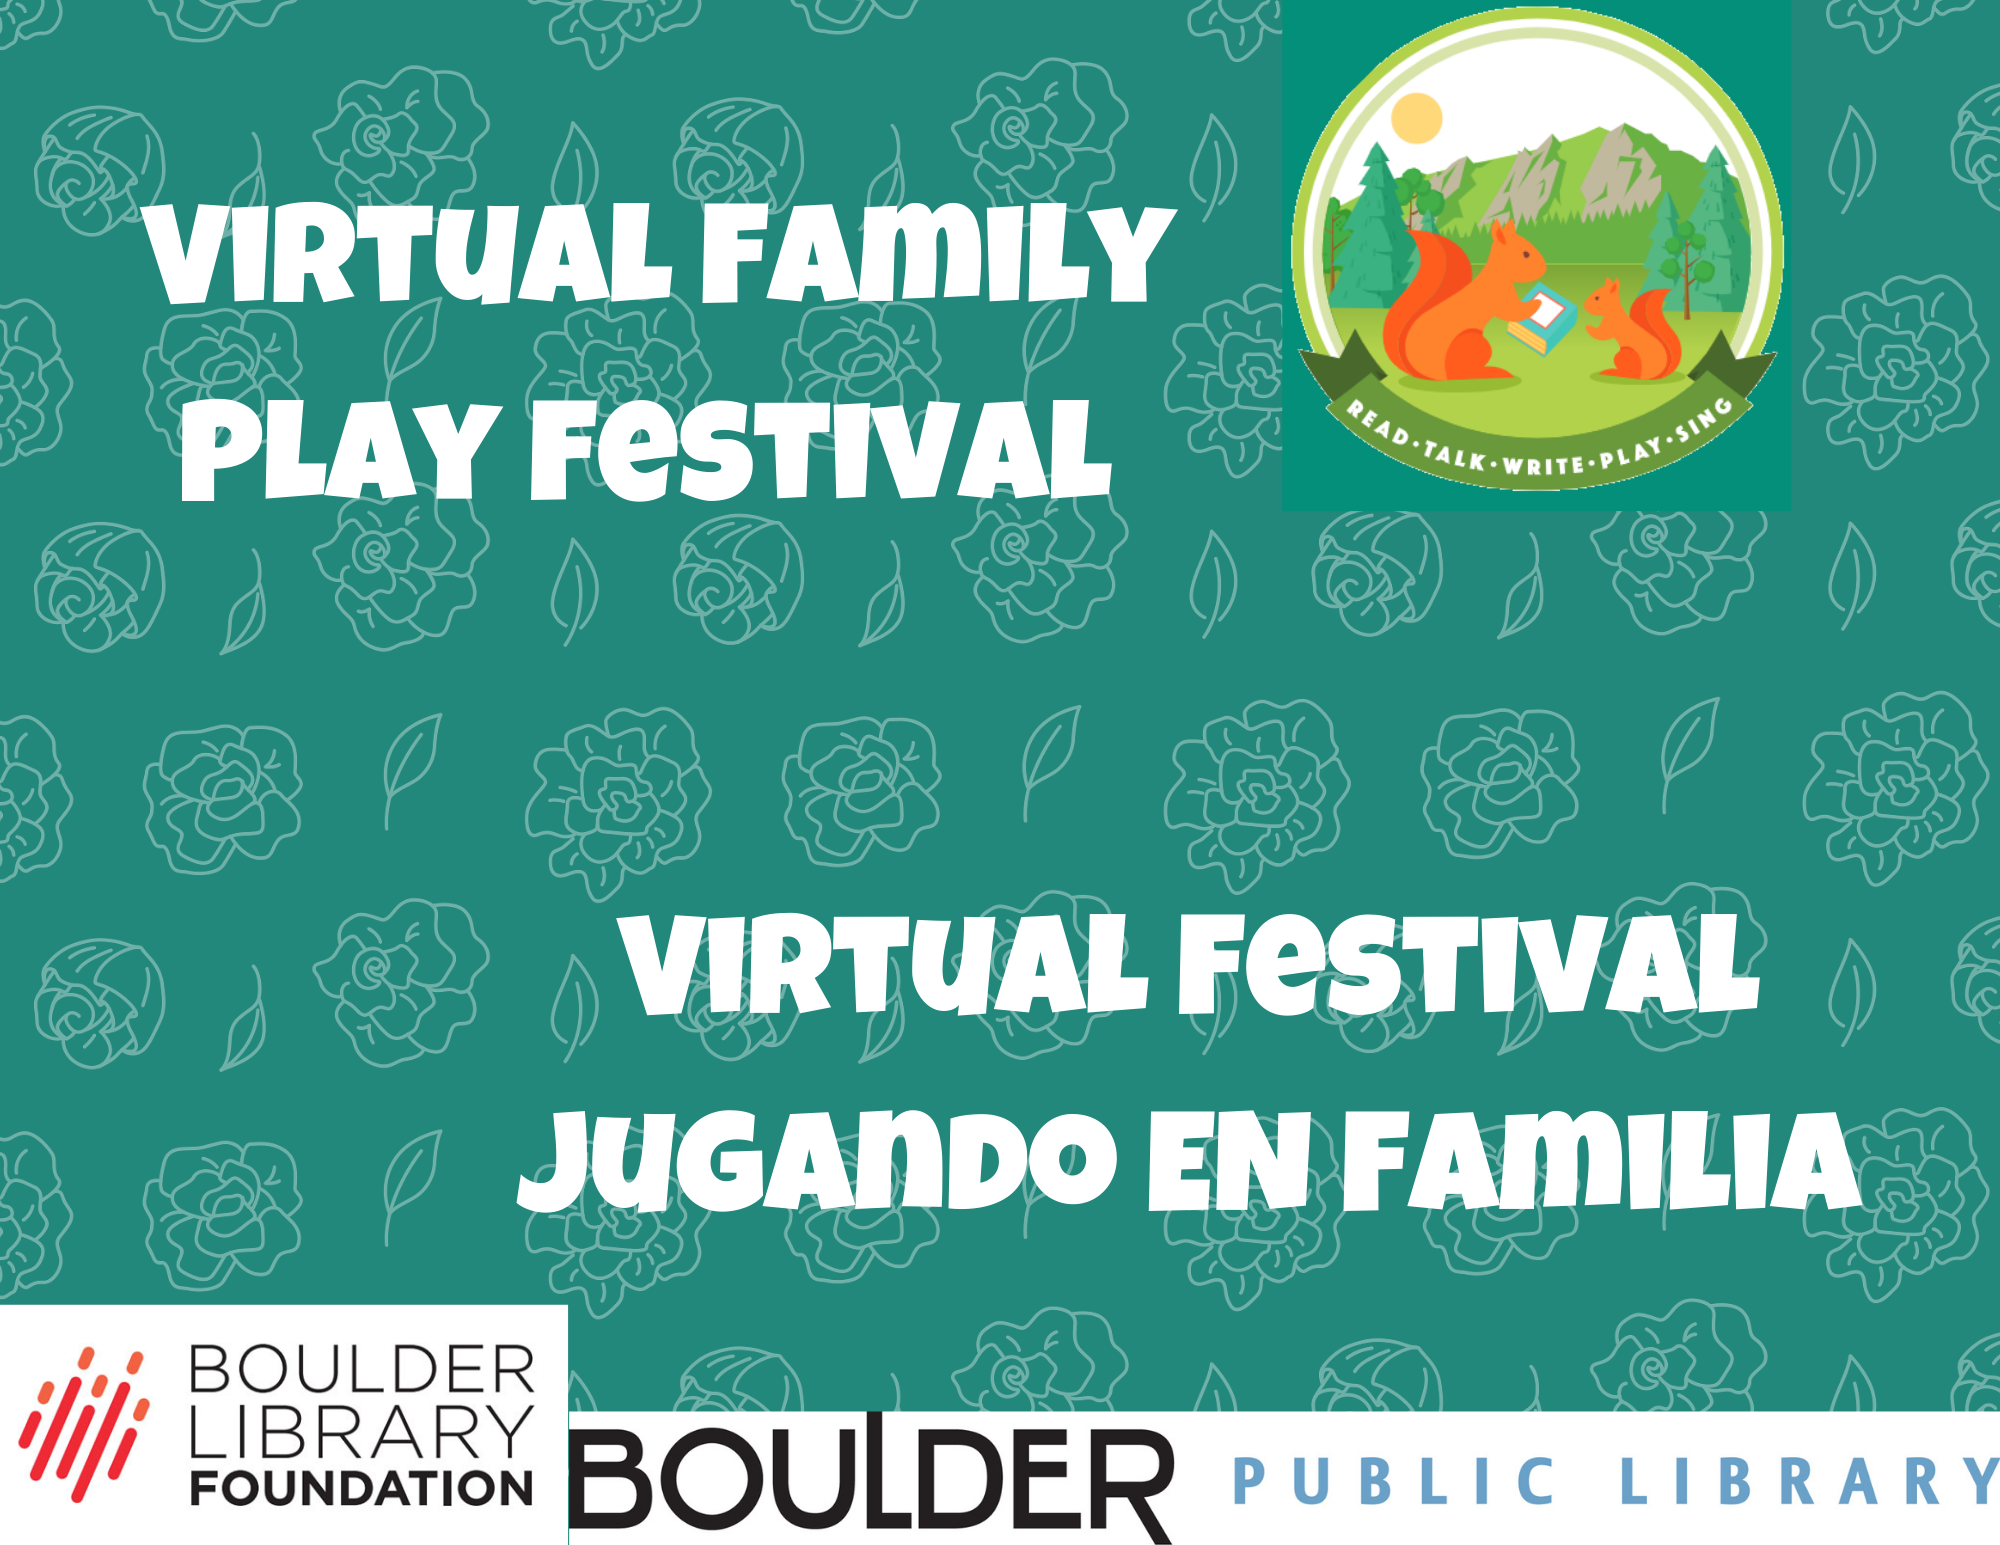 Virtual Family Play Festival: Q&A with City of Boulder Family Services Manager Wanda Pelegrina